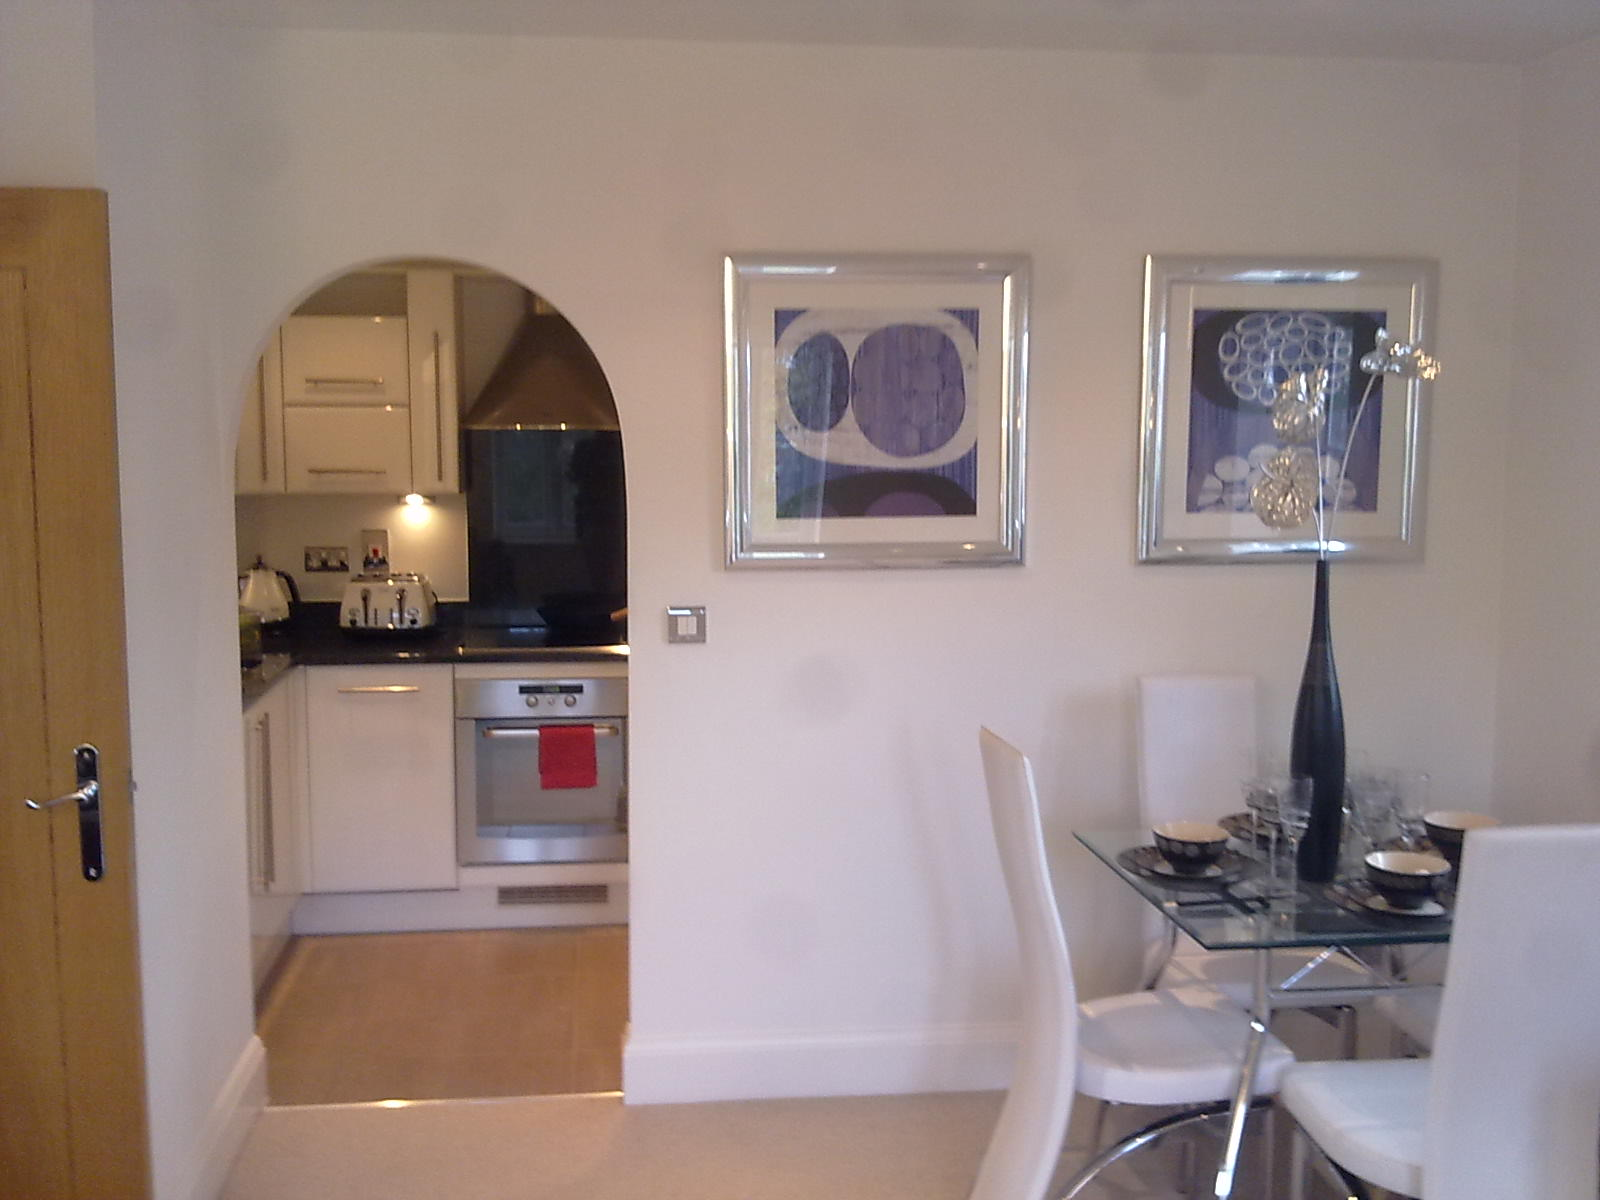 Looking-for-affordable-apartments-in-Richmond?-why-not-book-our-lovely-Richmond-Shortlet-Apartment-today.-Call-Urban-Stay-now-for-great-rates.